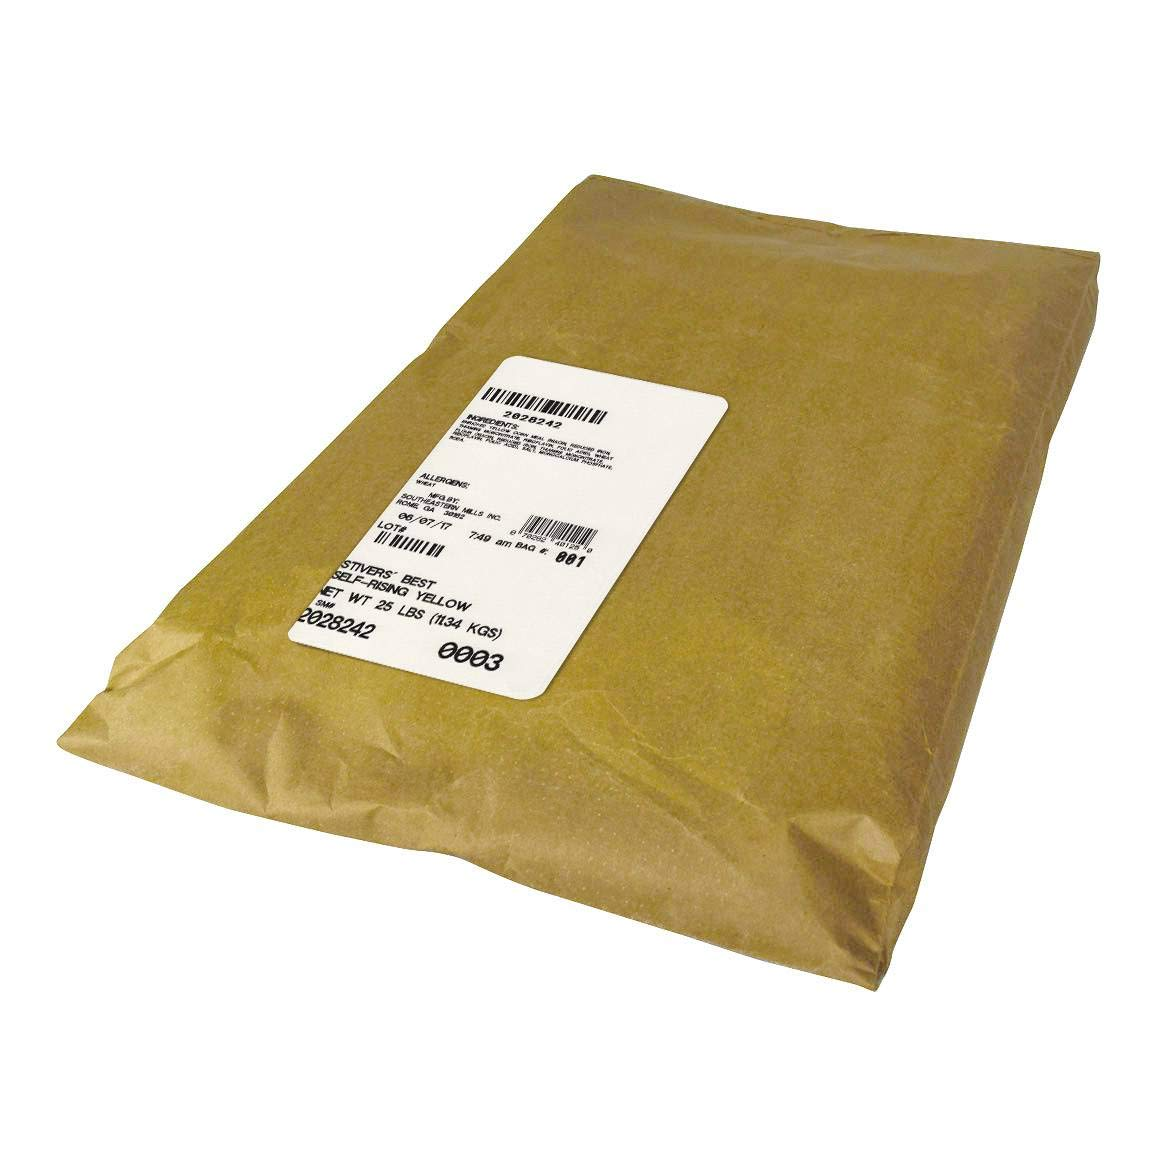 Southeastern Mills Stivers Best Plain Self Rising Yellow Cornmeal, 25 Pound - 1 each.